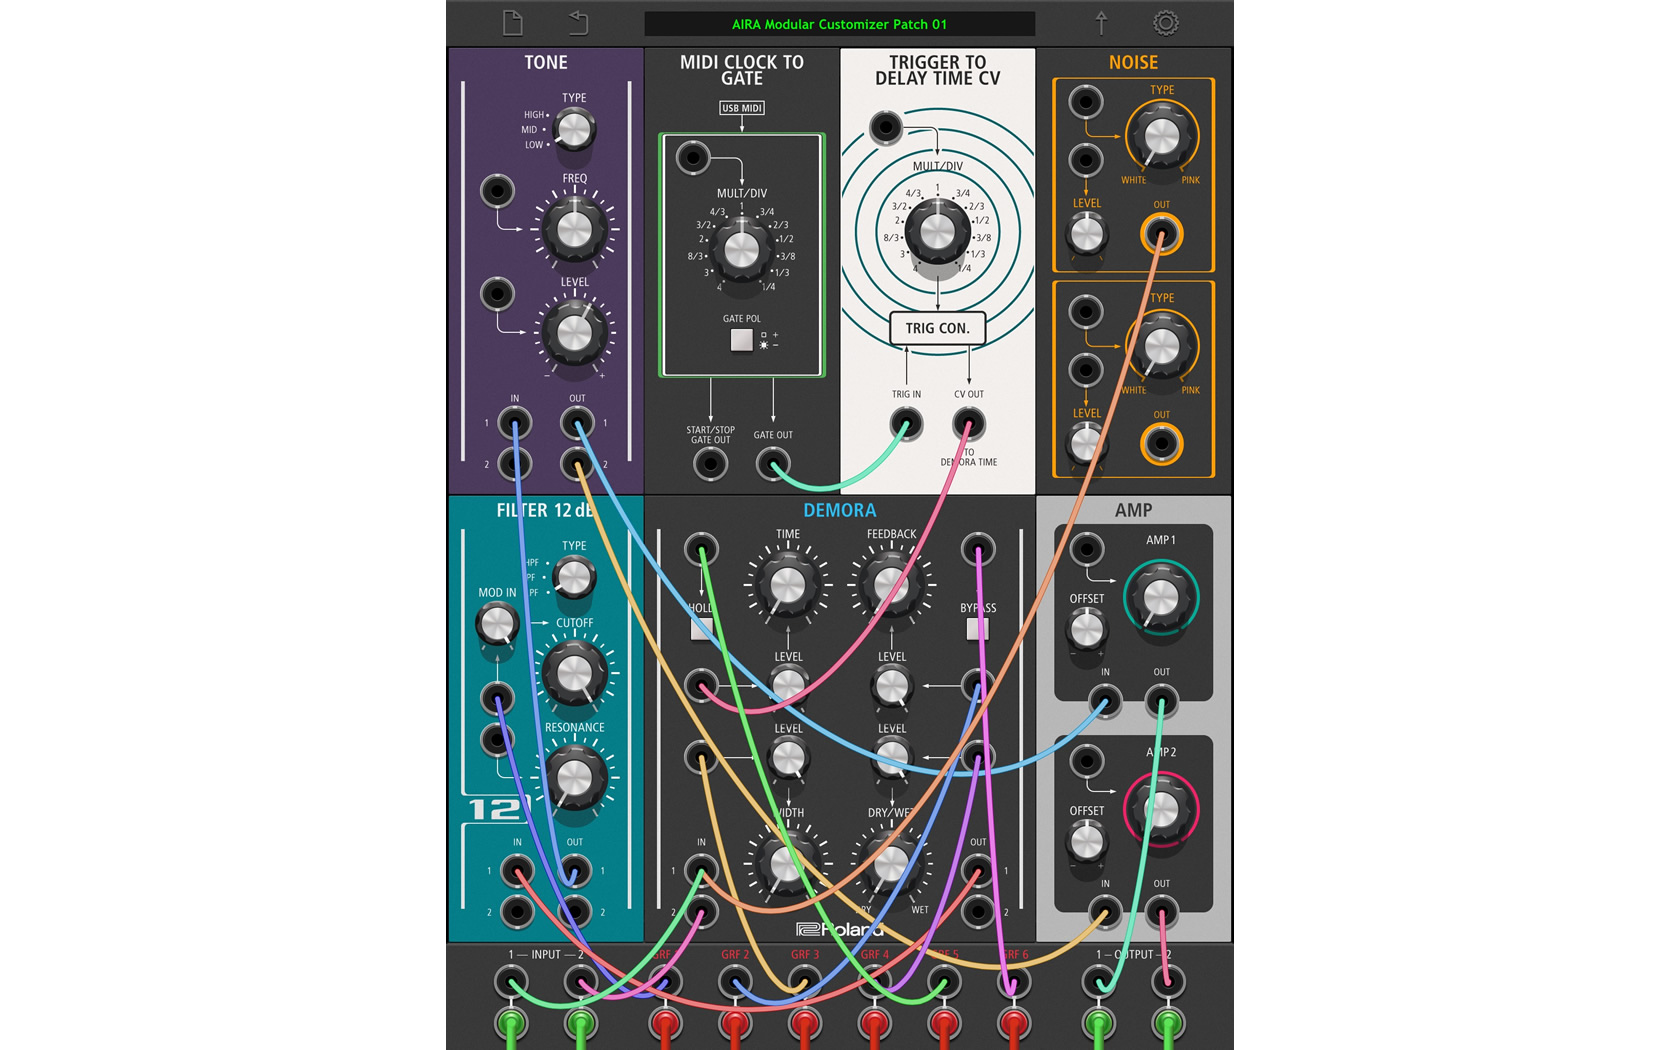 roland aira modular customizer aira modular customizer